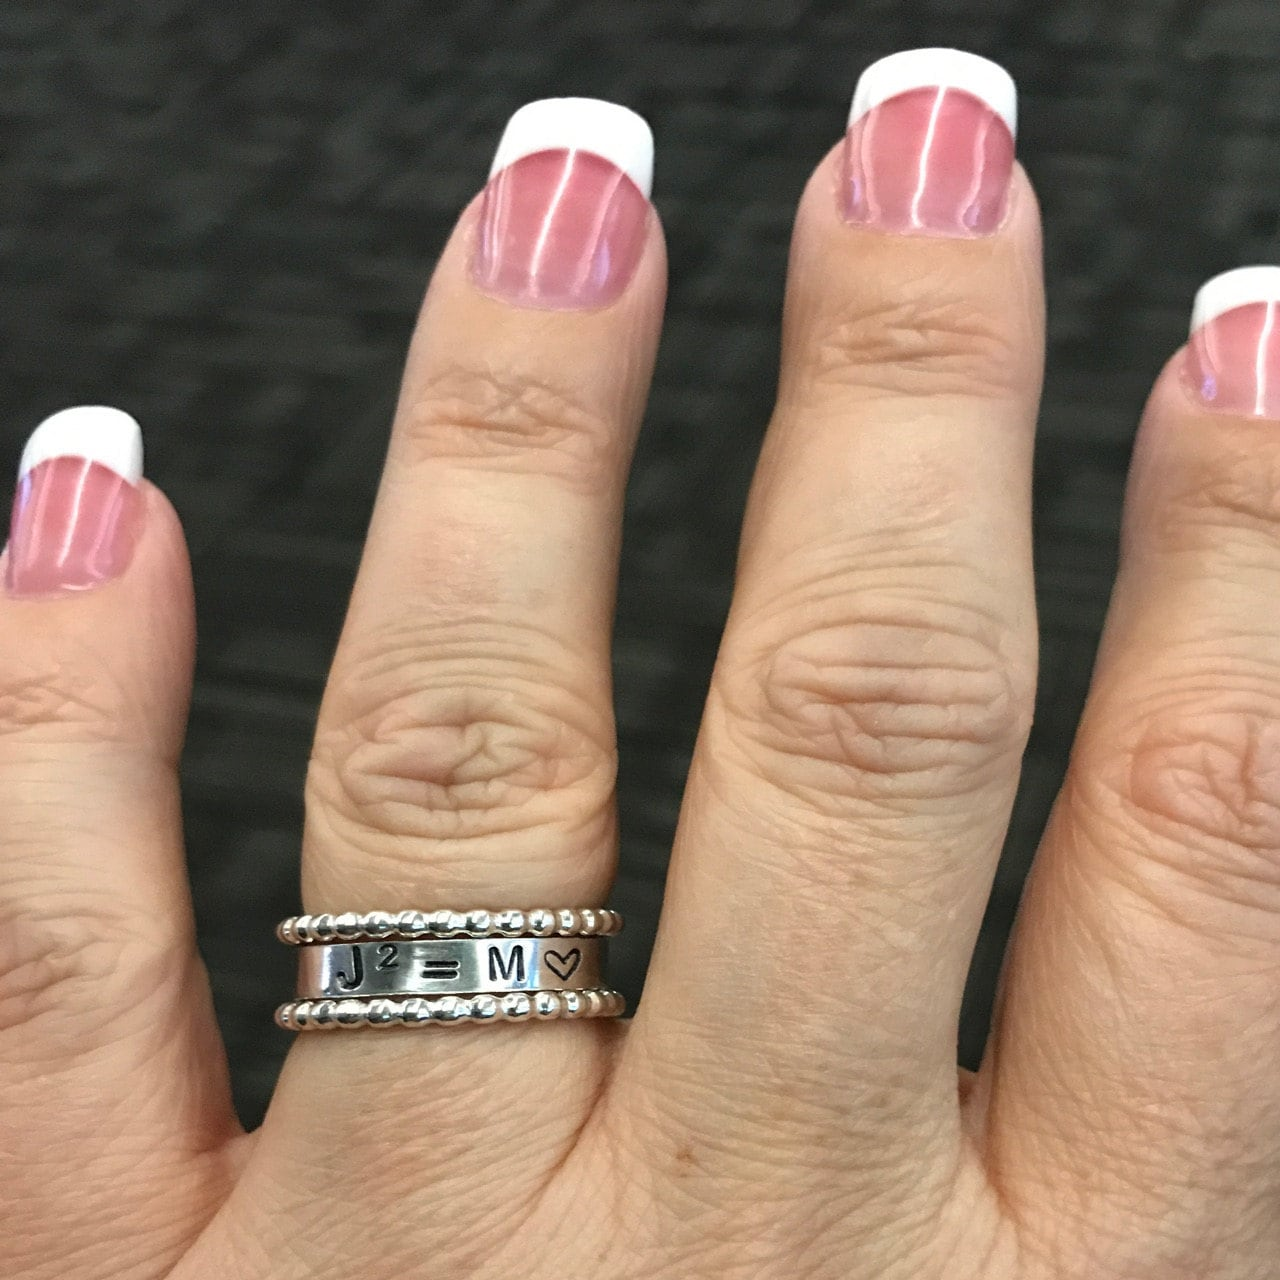 Jennifer Rodgers added a photo of their purchase